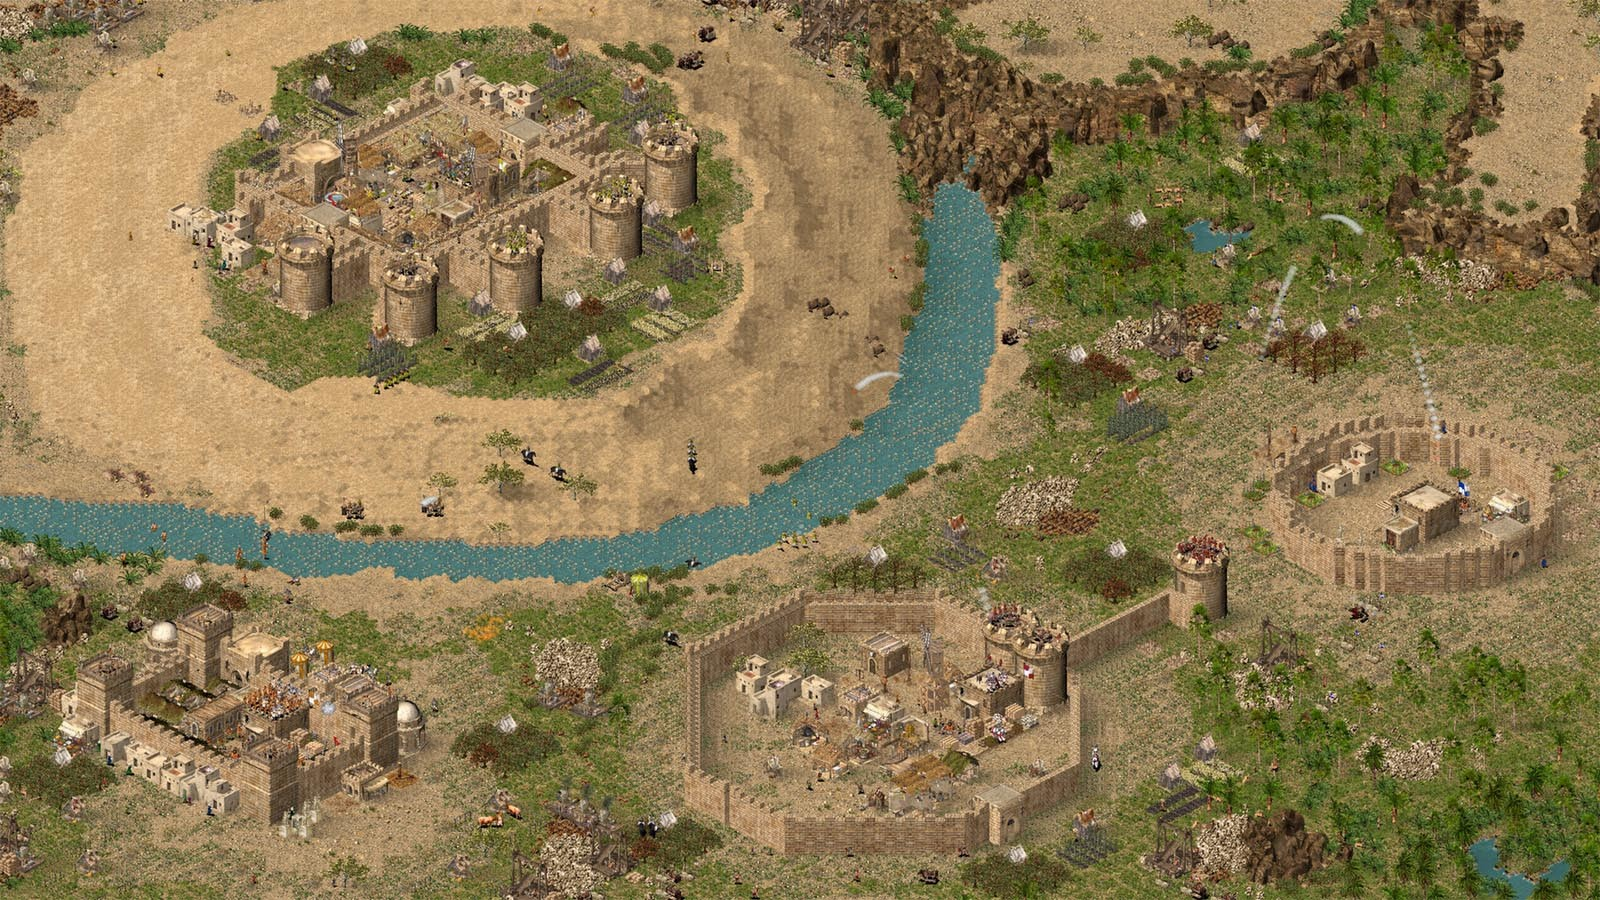 Stronghold Crusader Hd Steam Key For Pc Buy Now